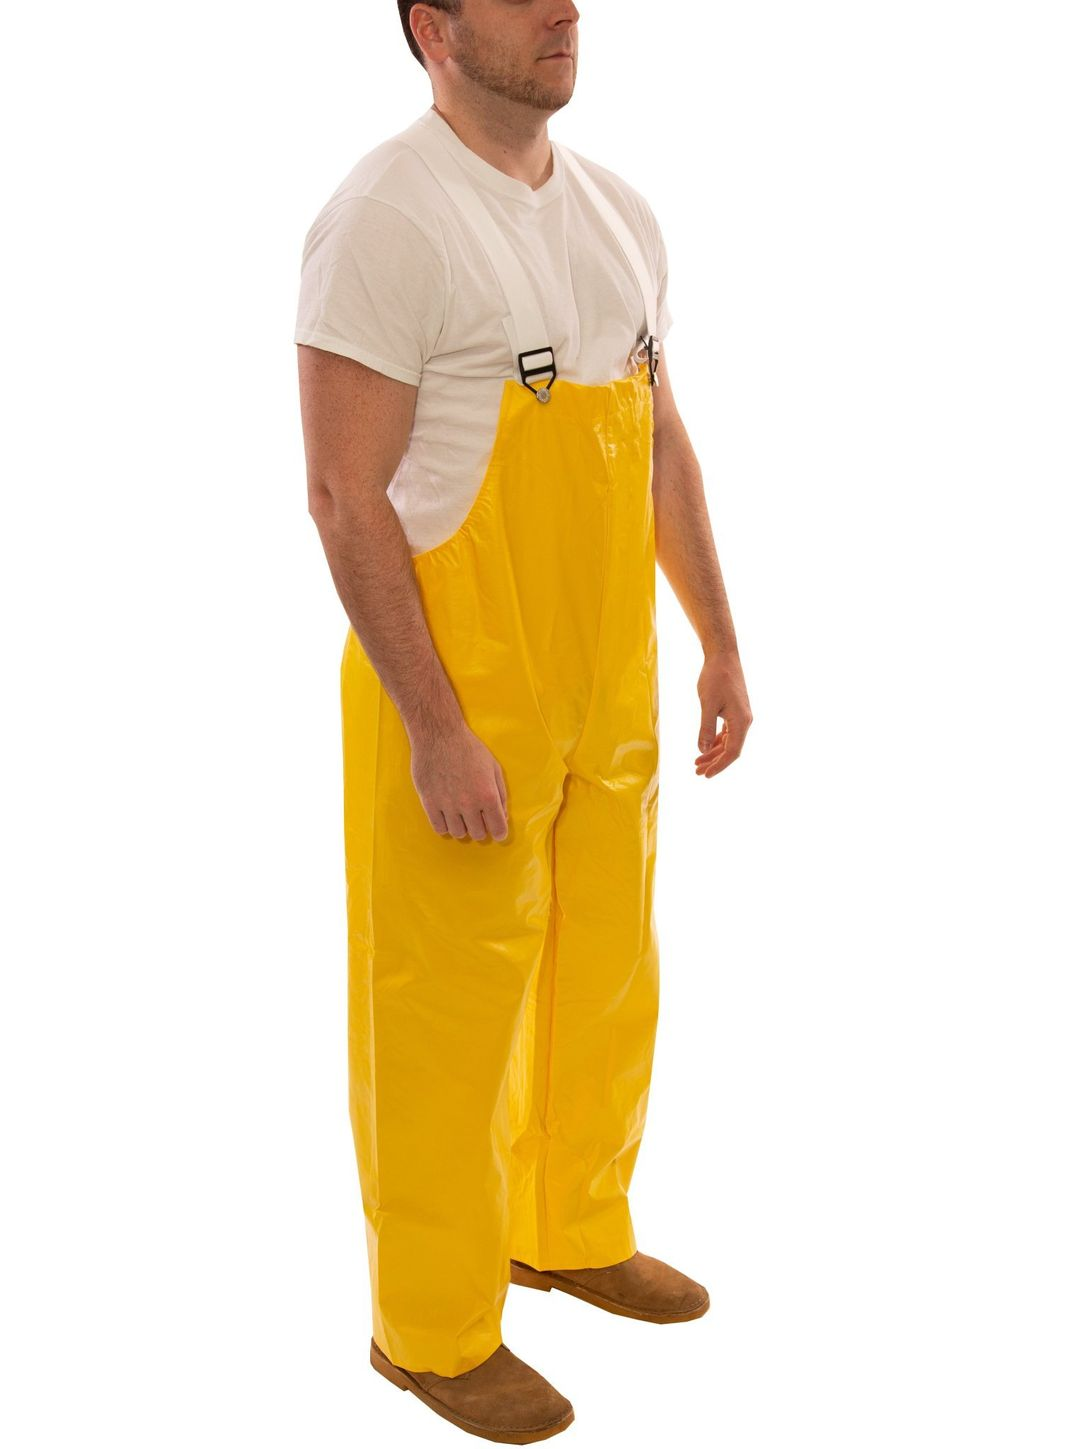 tingley-o32007-pvc-coated-work-overalls-with-plain-front-side.jpg